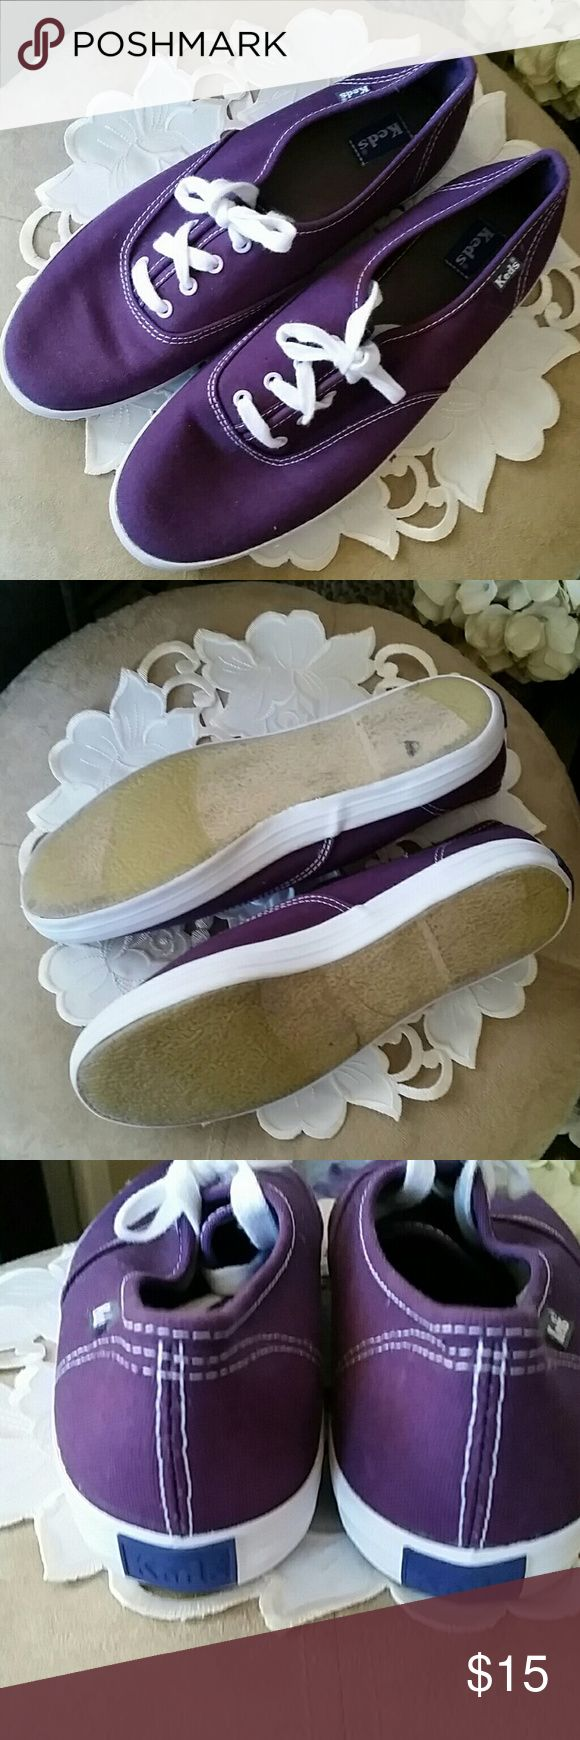 KEDS Sneakers 7.5 - like new Purple canvas KEDS Sneakers - like new. I am re-poshing these, never wore them. Size 7.5 Keds Shoes Sneakers